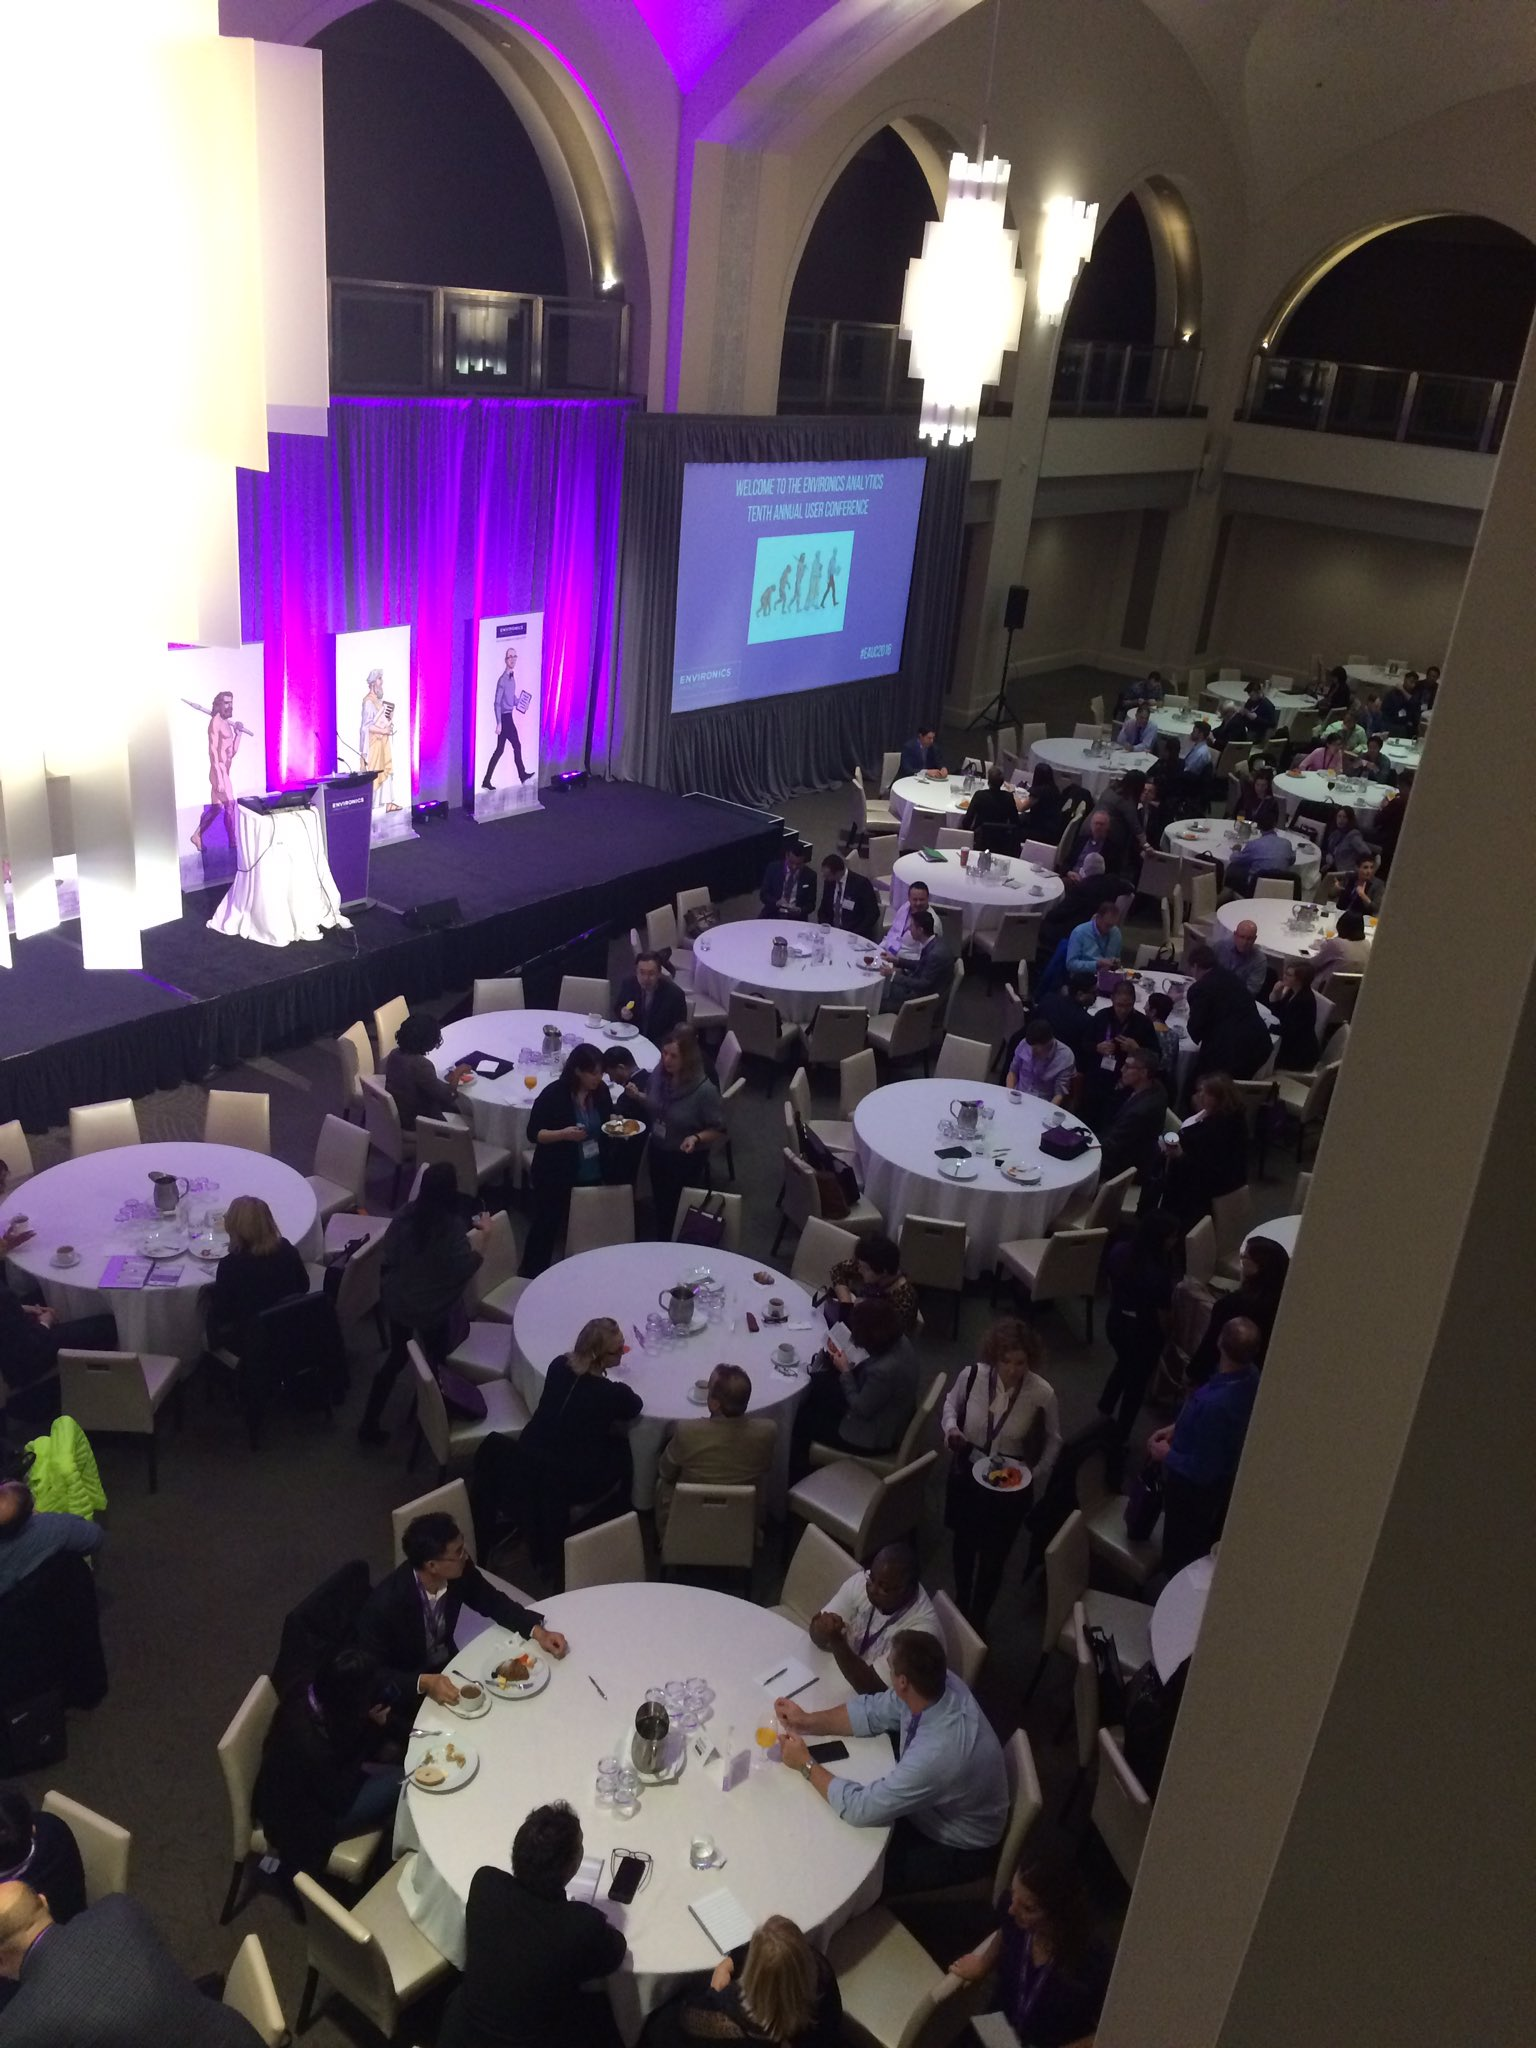 Our guests enjoying breakfast in the ballroom, welcome from @EnvironicsA  #EAUC2016 #datafoundation #marketing #breakfast #conference https://t.co/yJyAhhhvYf